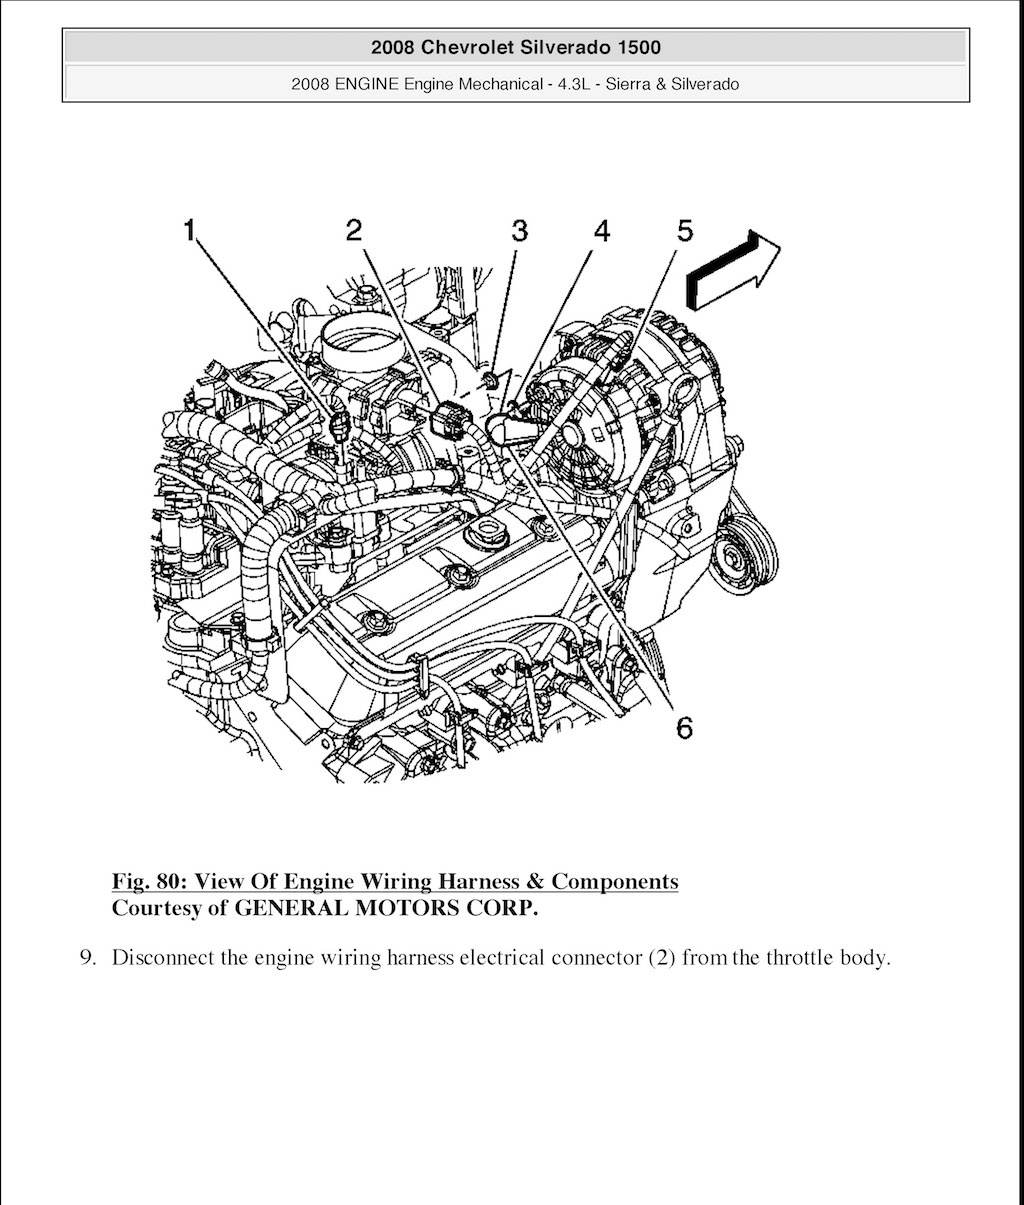 2009 gmc sierra 1500 engine diagram - wiring diagram schema note-energy -  note-energy.atmosphereconcept.it  atmosphereconcept.it